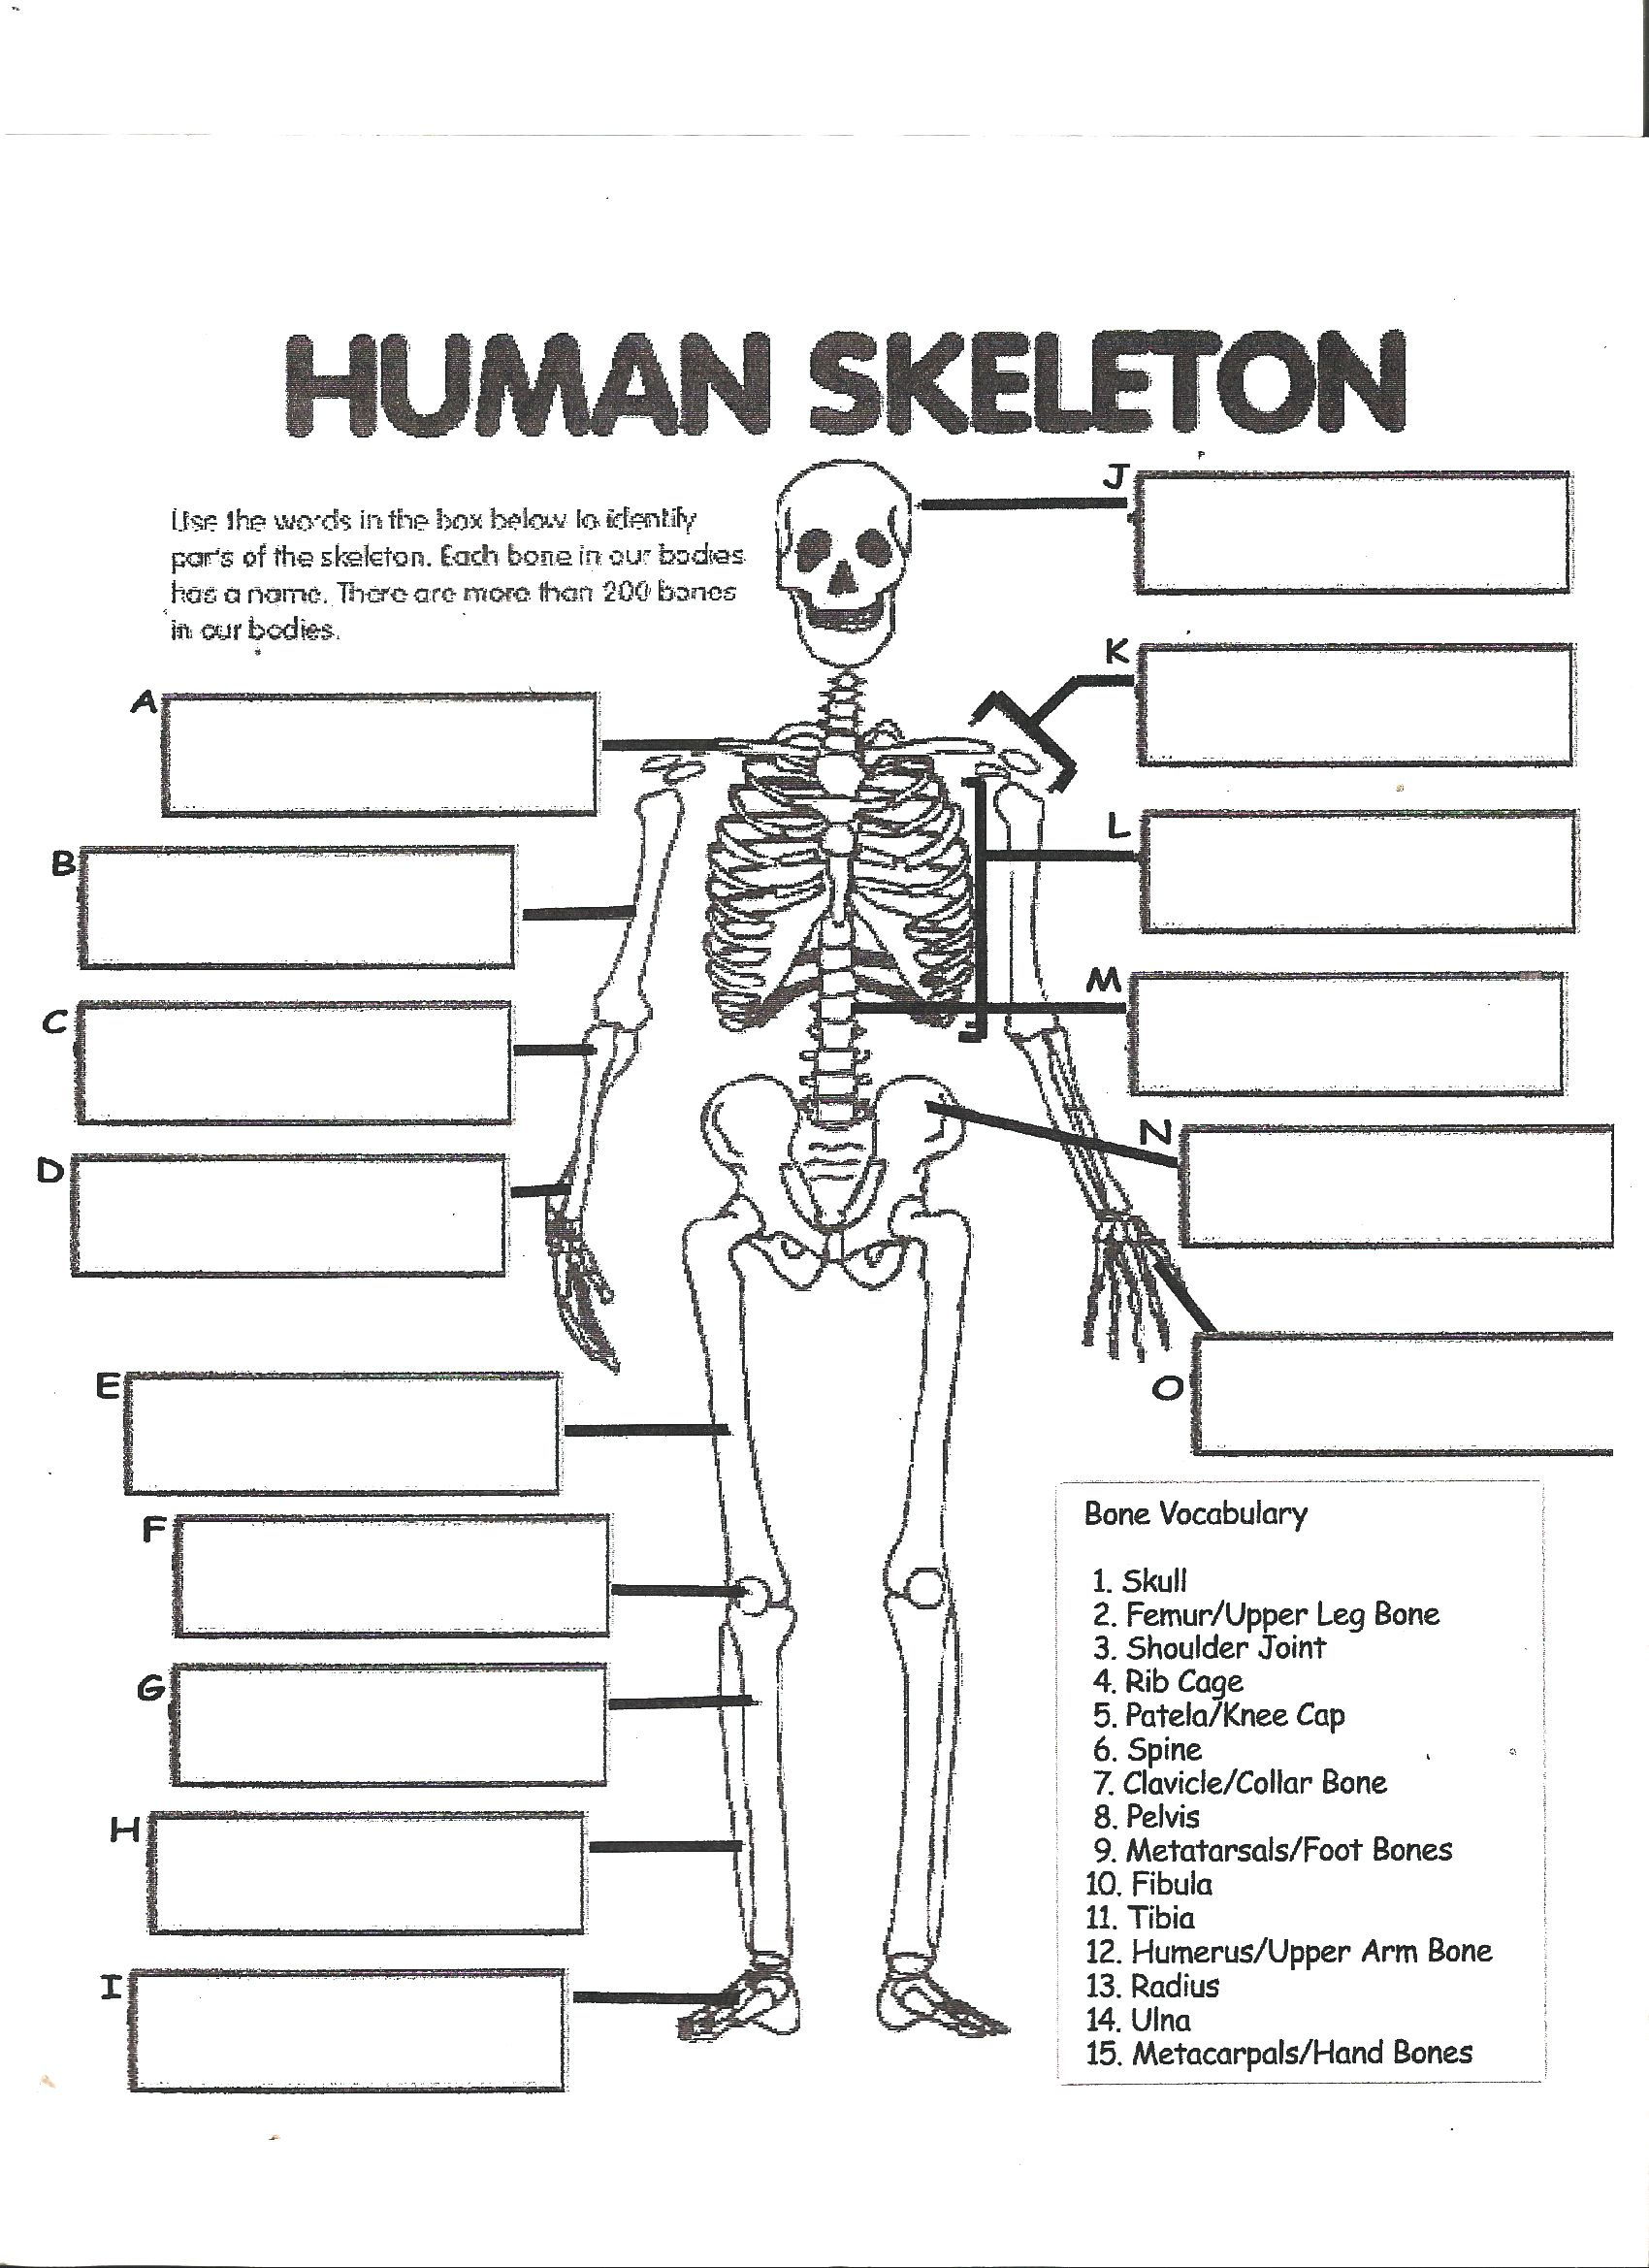 Digestive System Labeling Worksheet Answers Human skeleton – Human Skeleton Worksheet